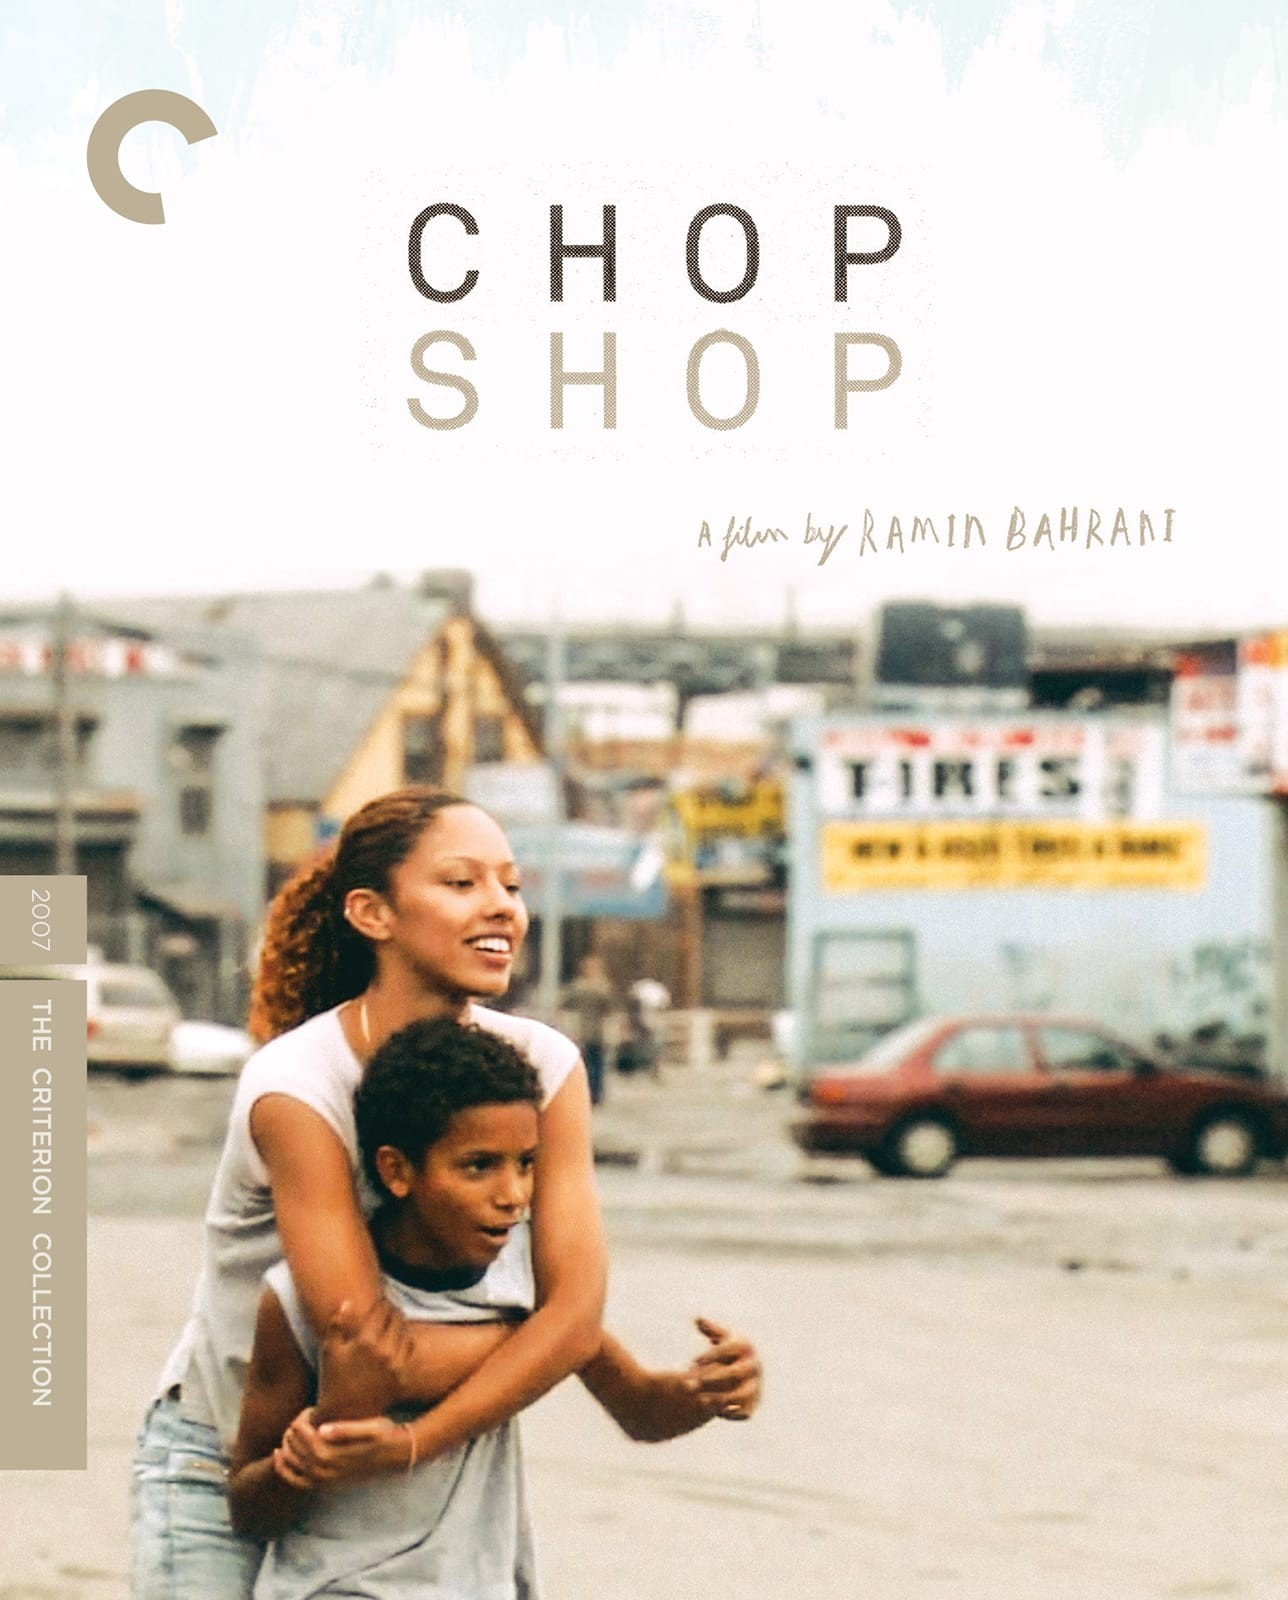 Chop Shop (2007) | The Criterion Collection